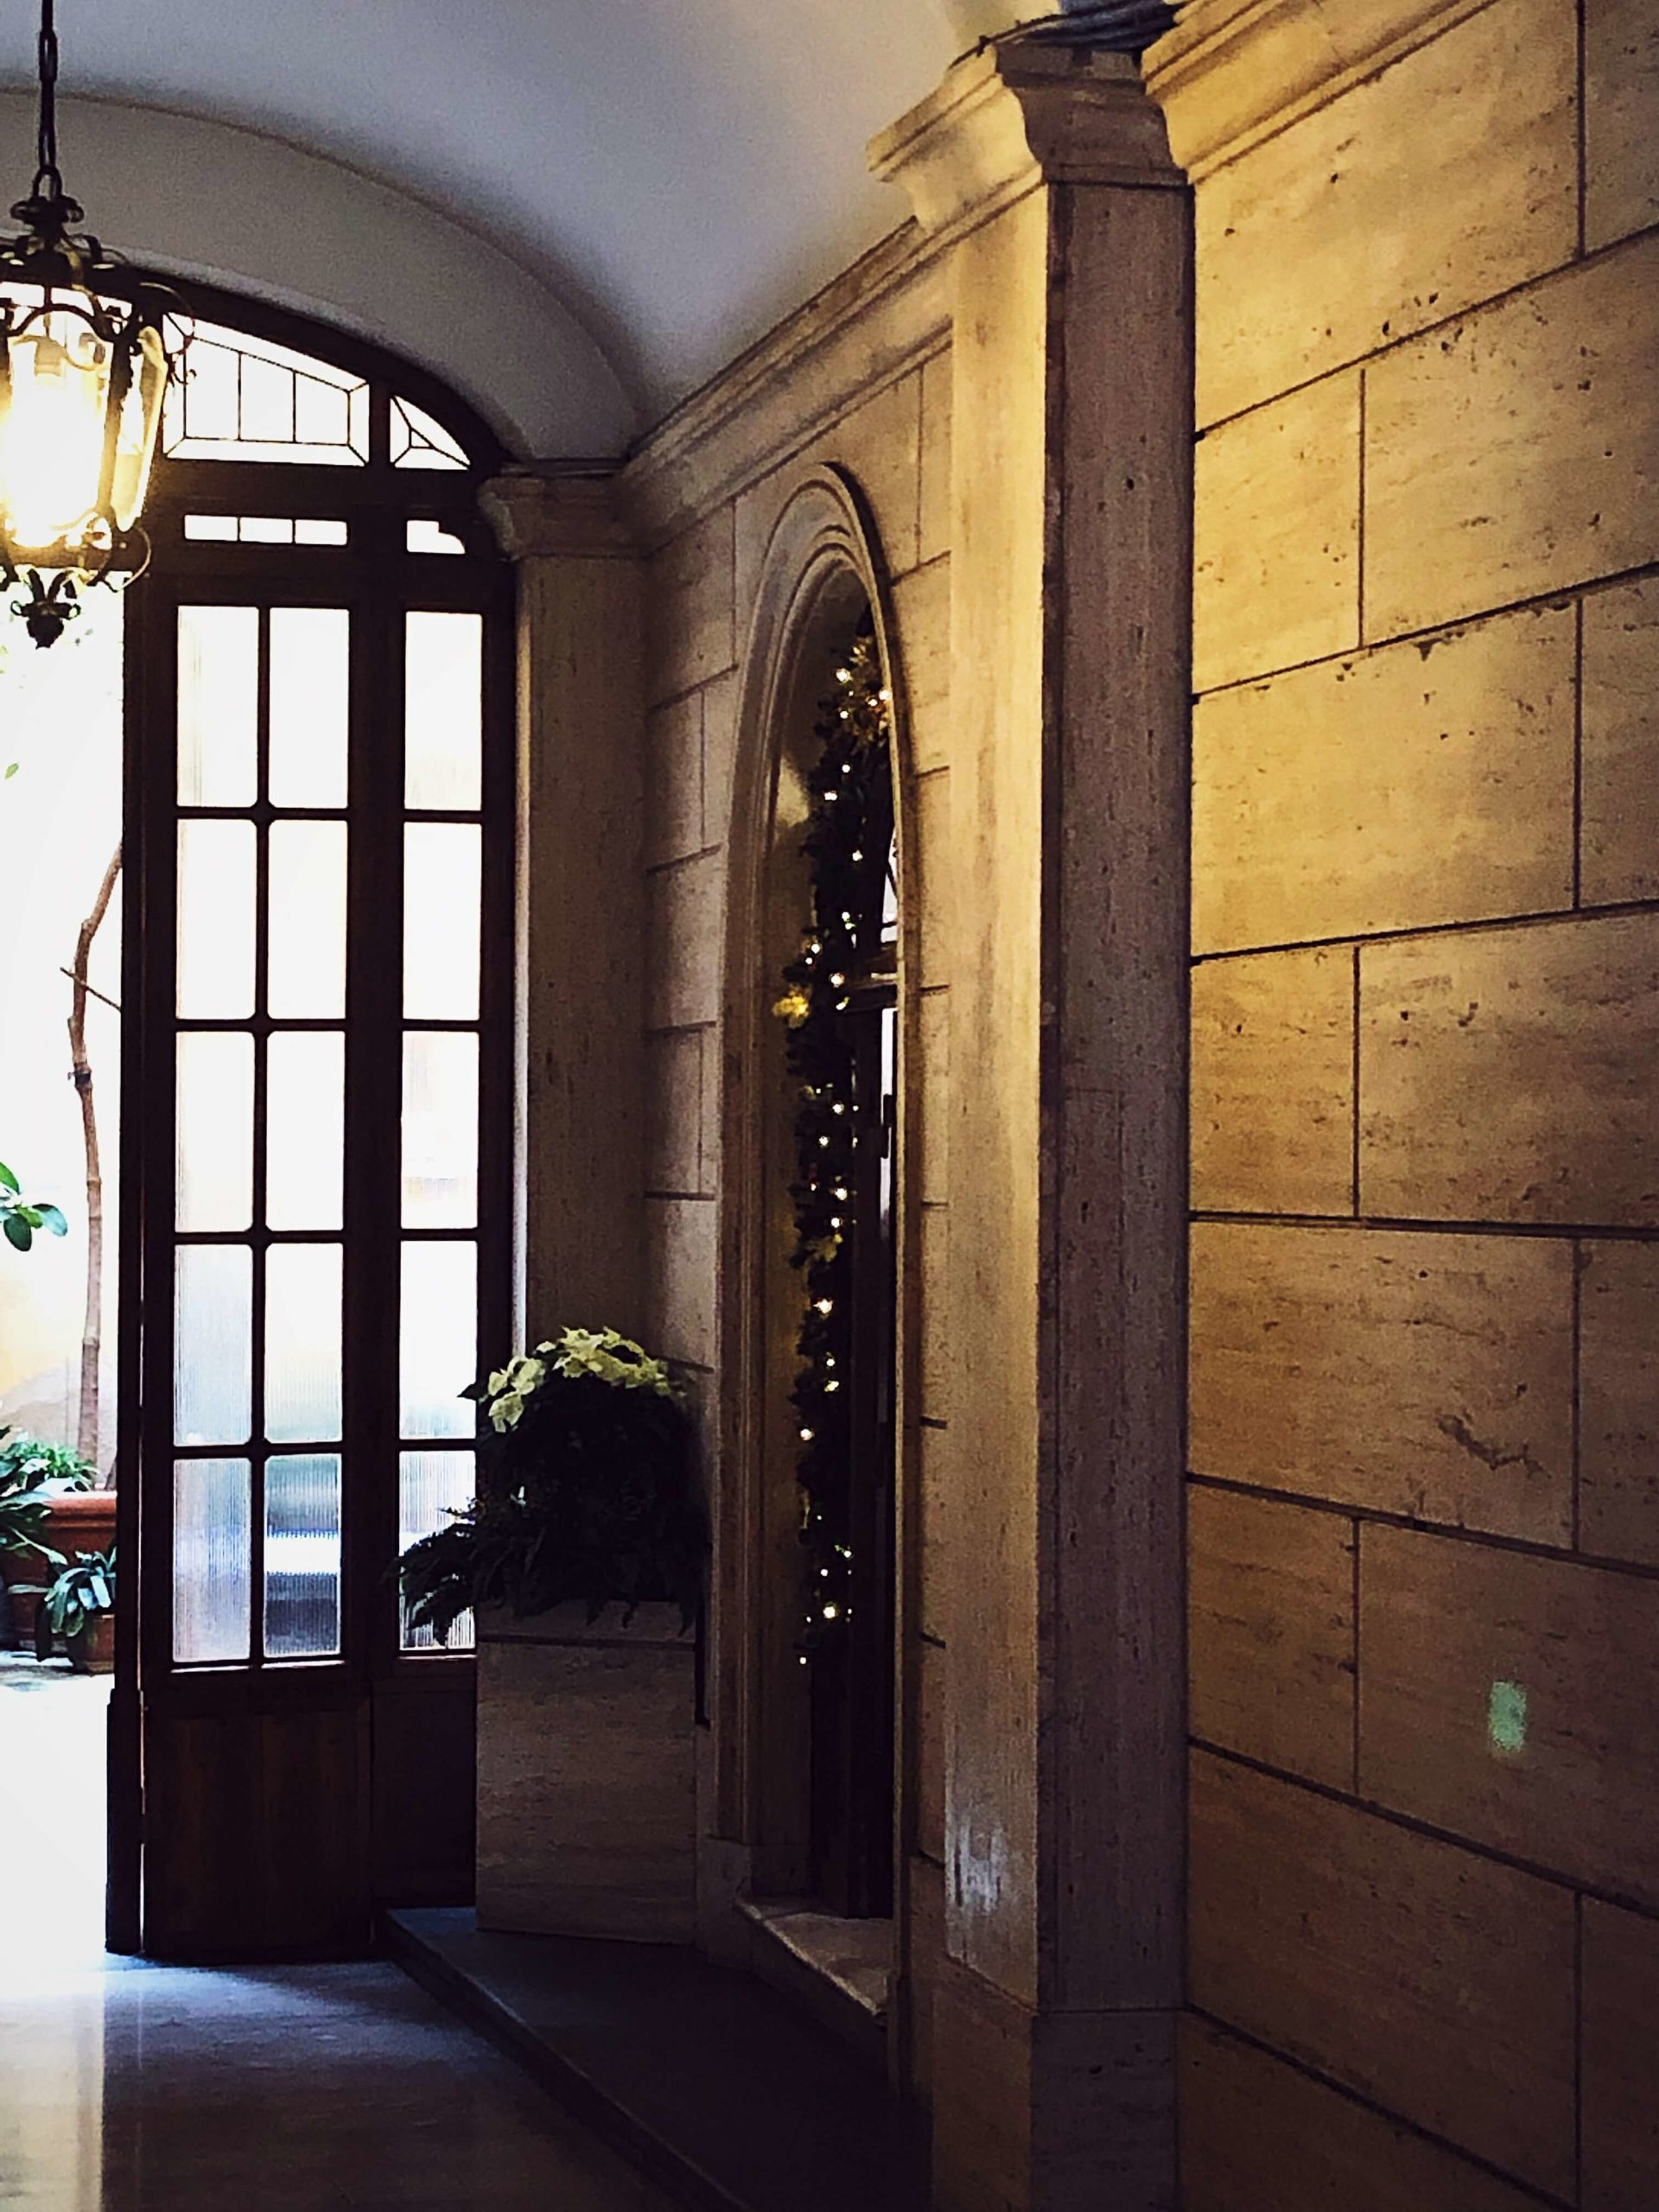 Roman palazzo entrance decorated for Christmas